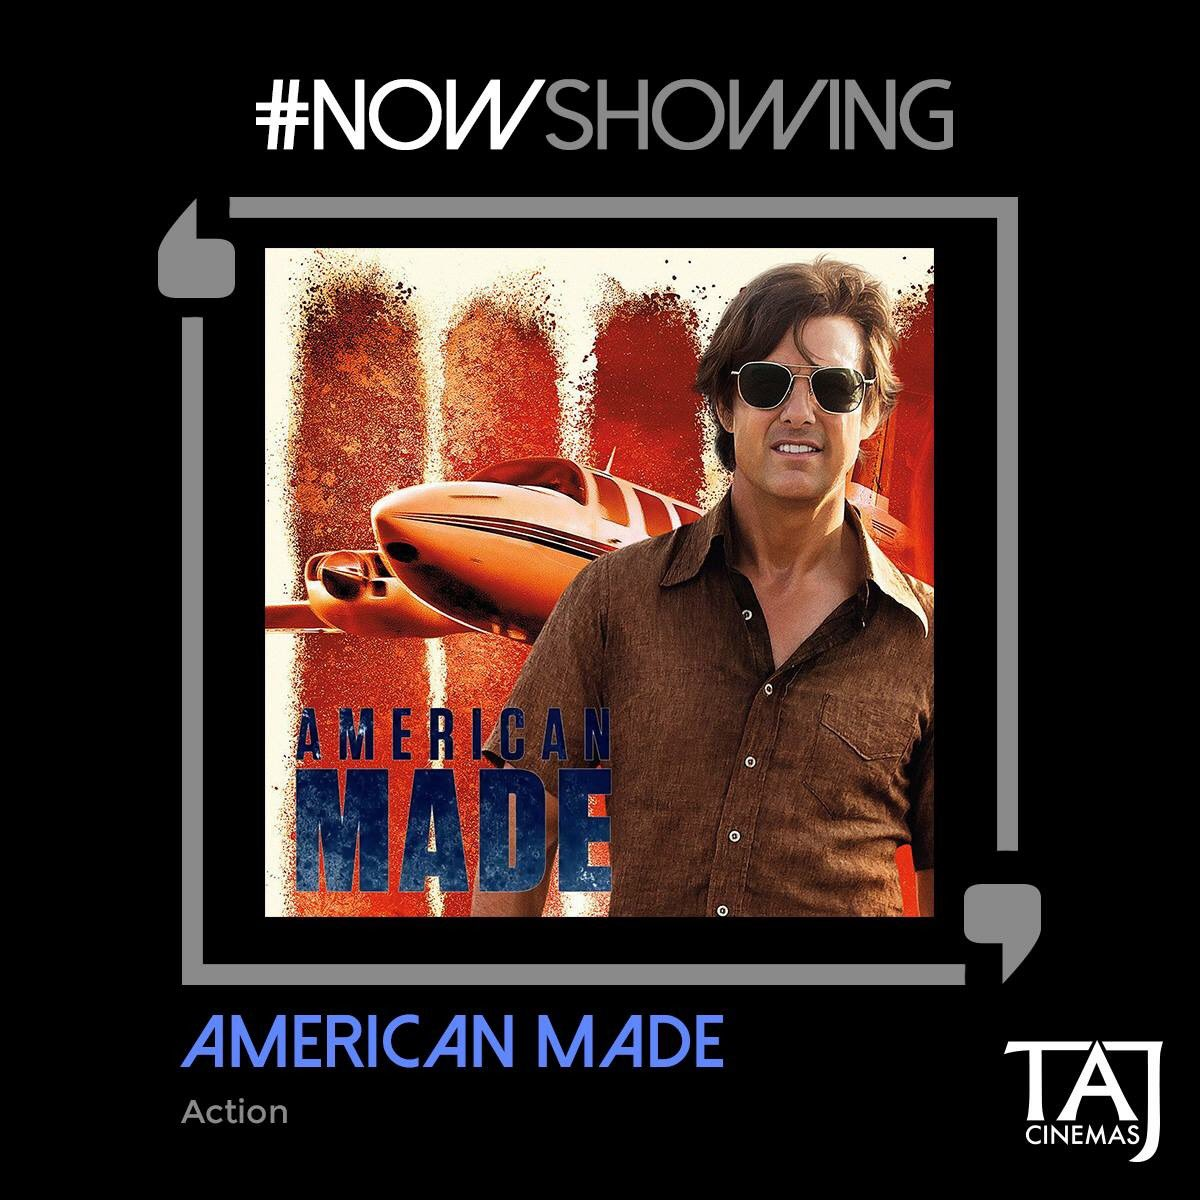 #NowShowing #Action #Biography #Comedy  Guns,Drugs,Money laundering. Based on an unbelievable true story,watch the #AmericanMade @TajCinemas https://t.co/2MvYp032I9